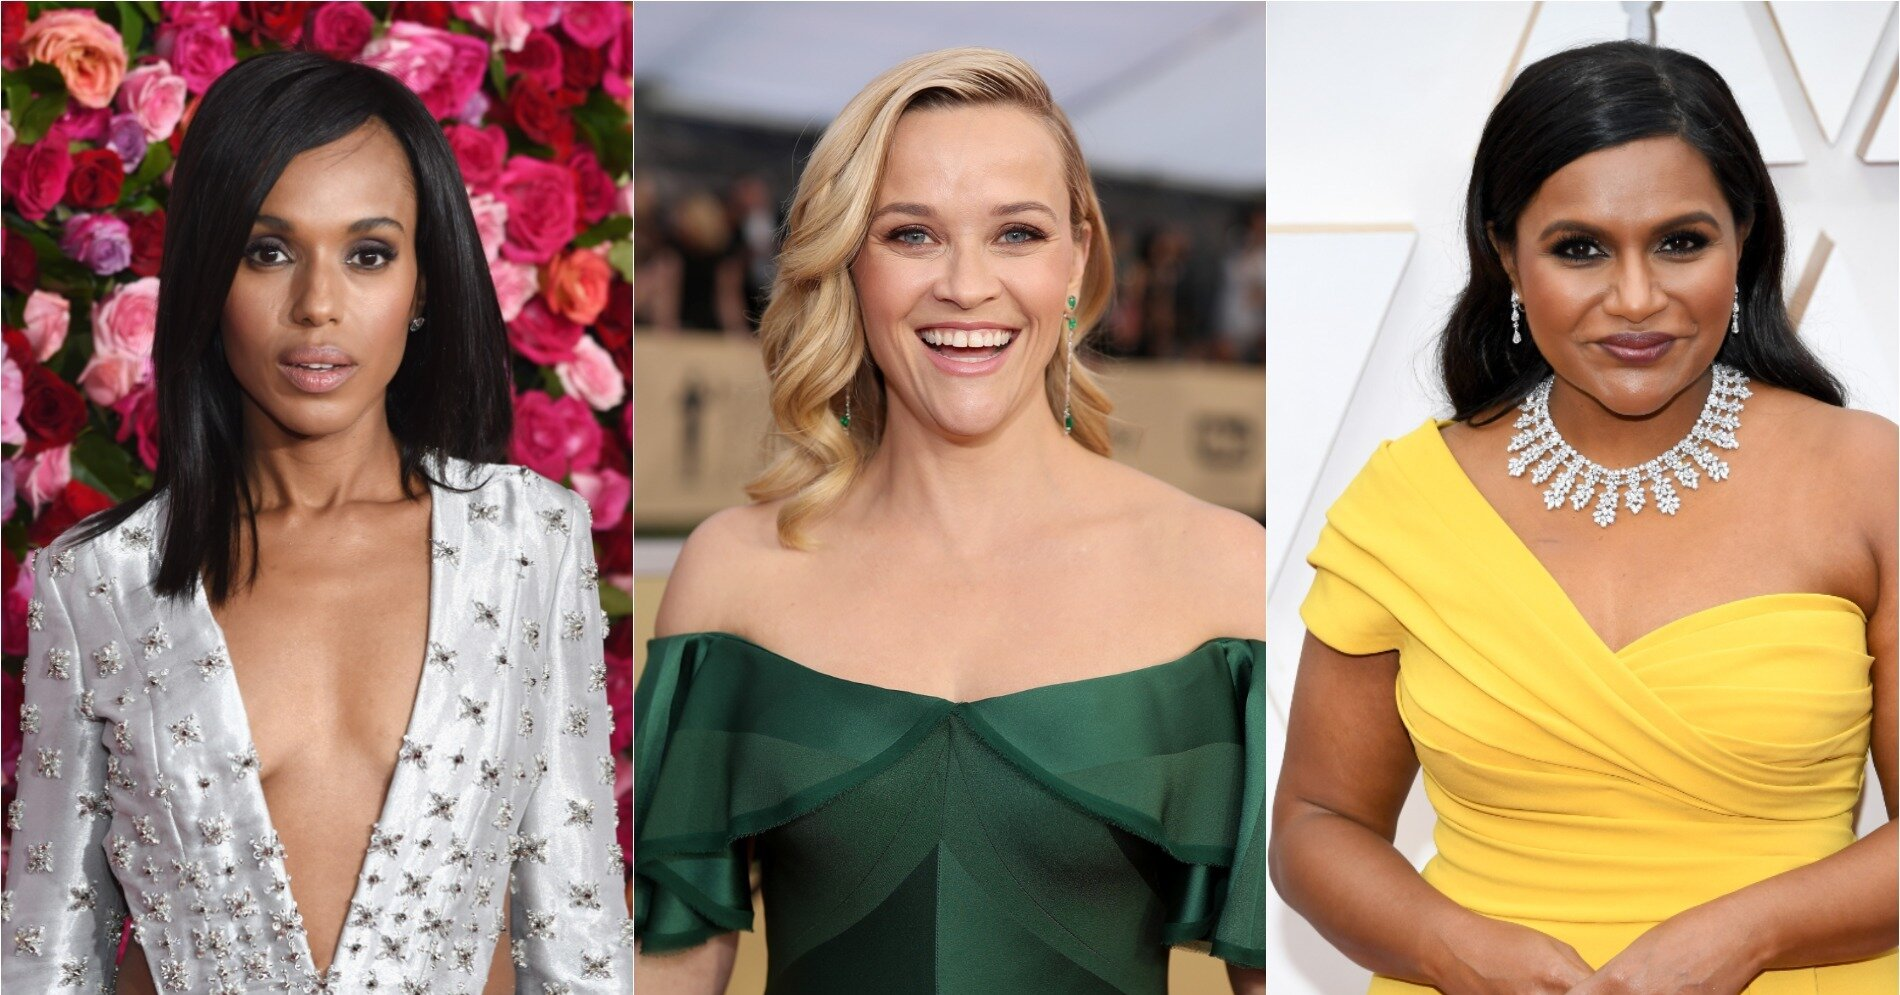 Reese Witherspoon Just Slayed the 2020 Mood Challenge on Instagram